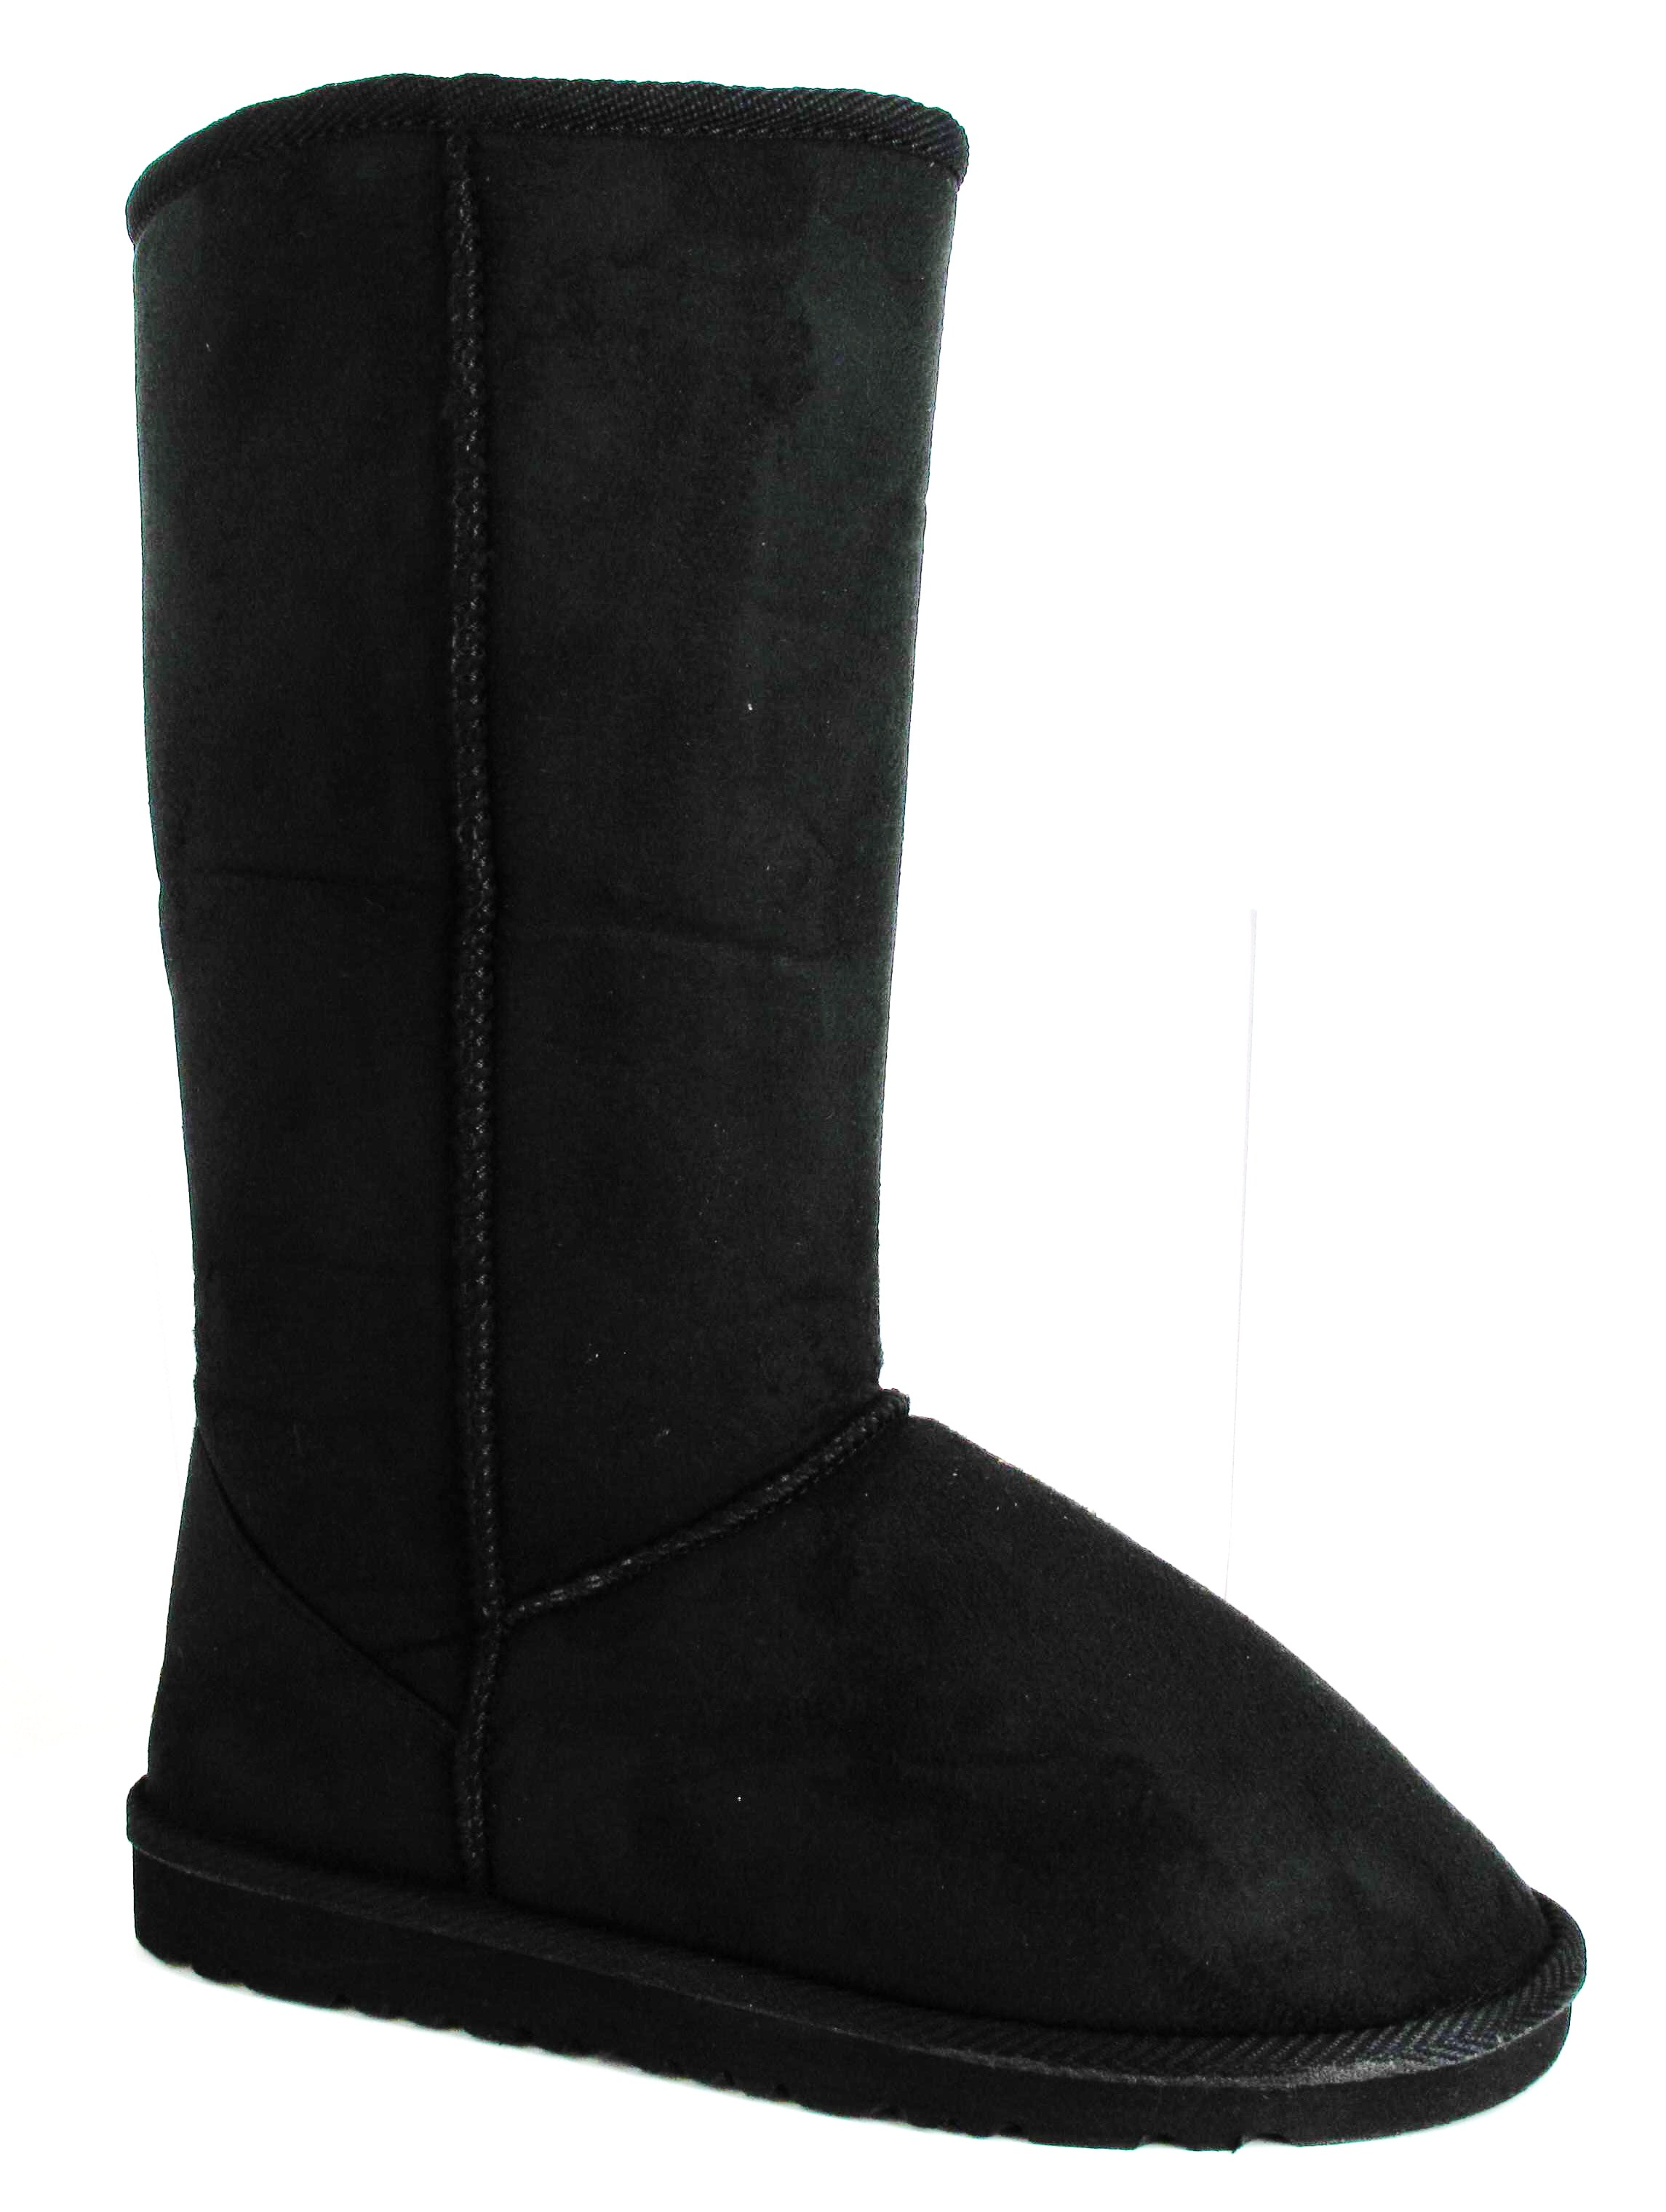 Ladies Snow Boots Size 5 Uk   Planetary Skin Institute